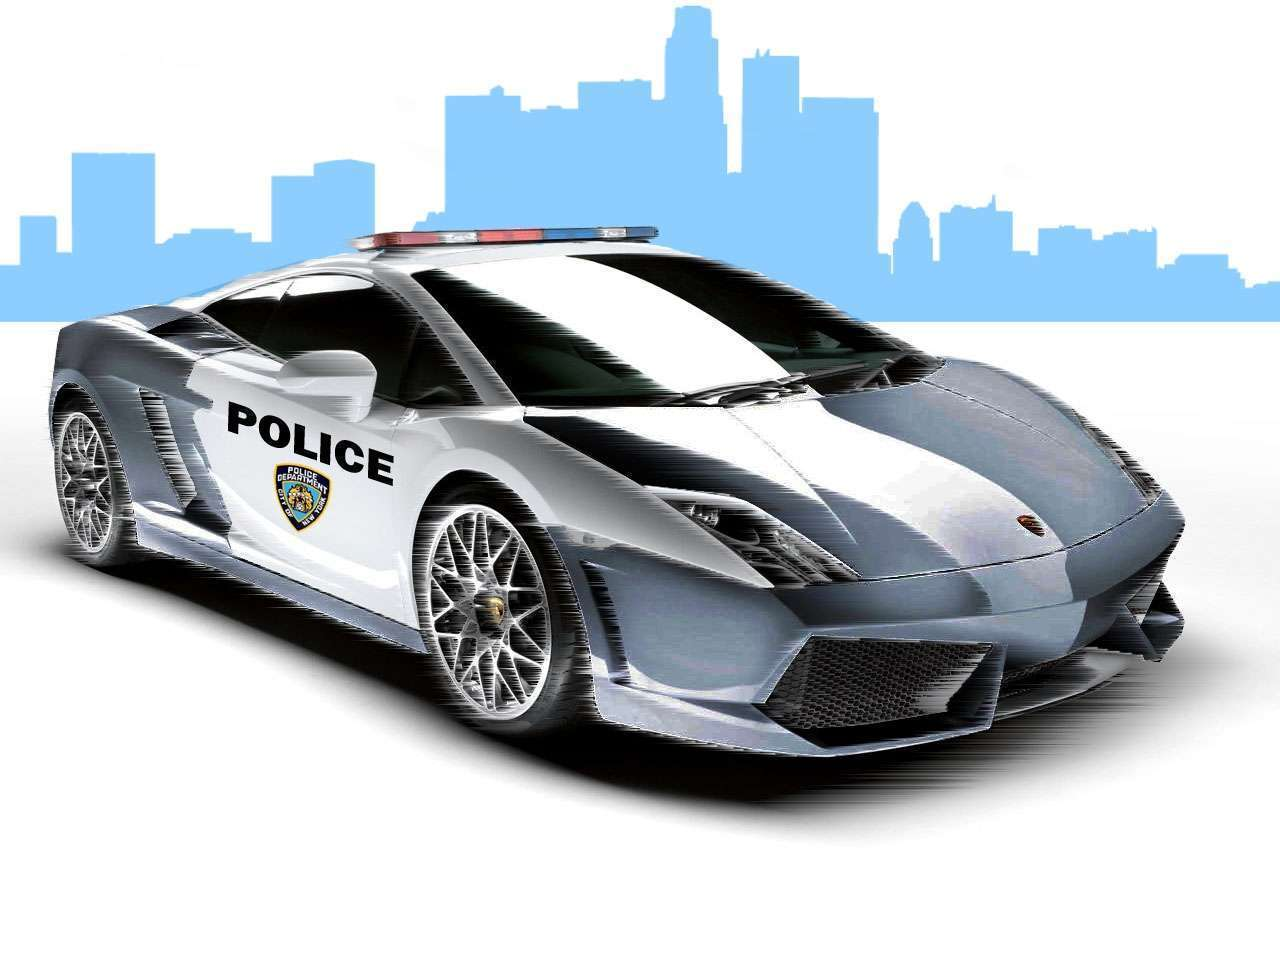 Lamborghini Police Wallpaper Wallpapers Hd Car Wallpapers 1280x960